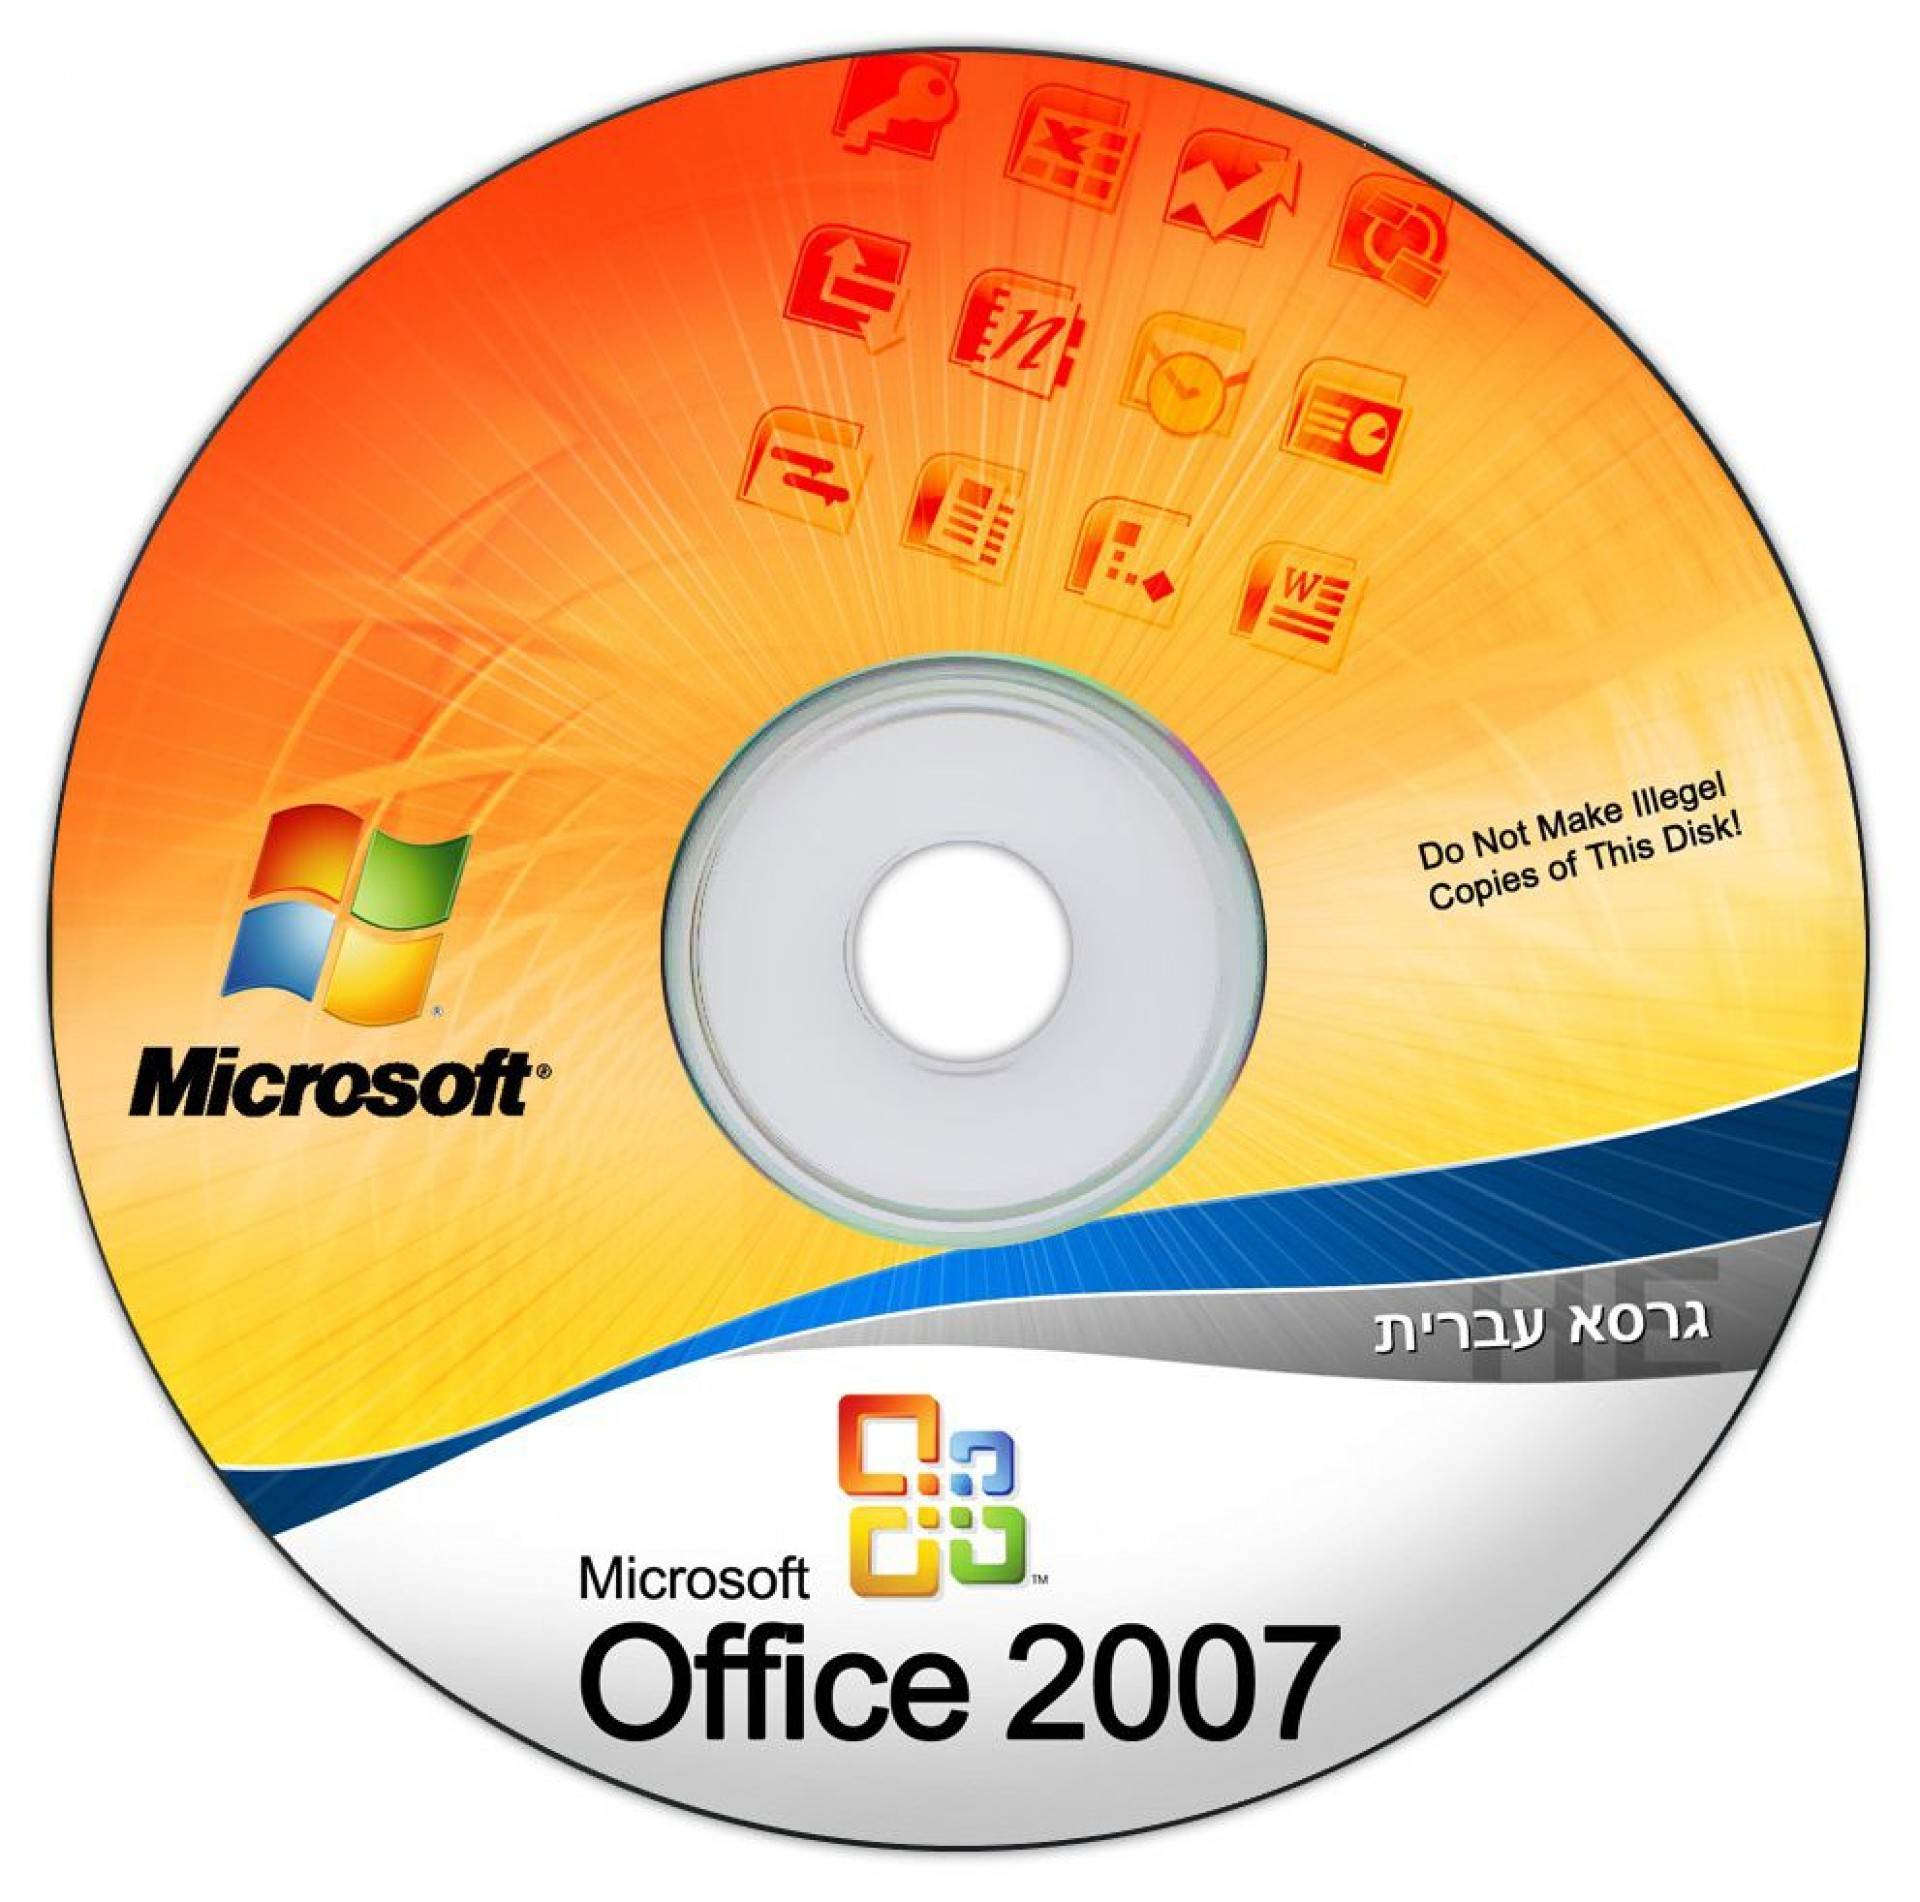 008 Excellent Cd Label Template Word 2010 Highest Quality  Microsoft1920